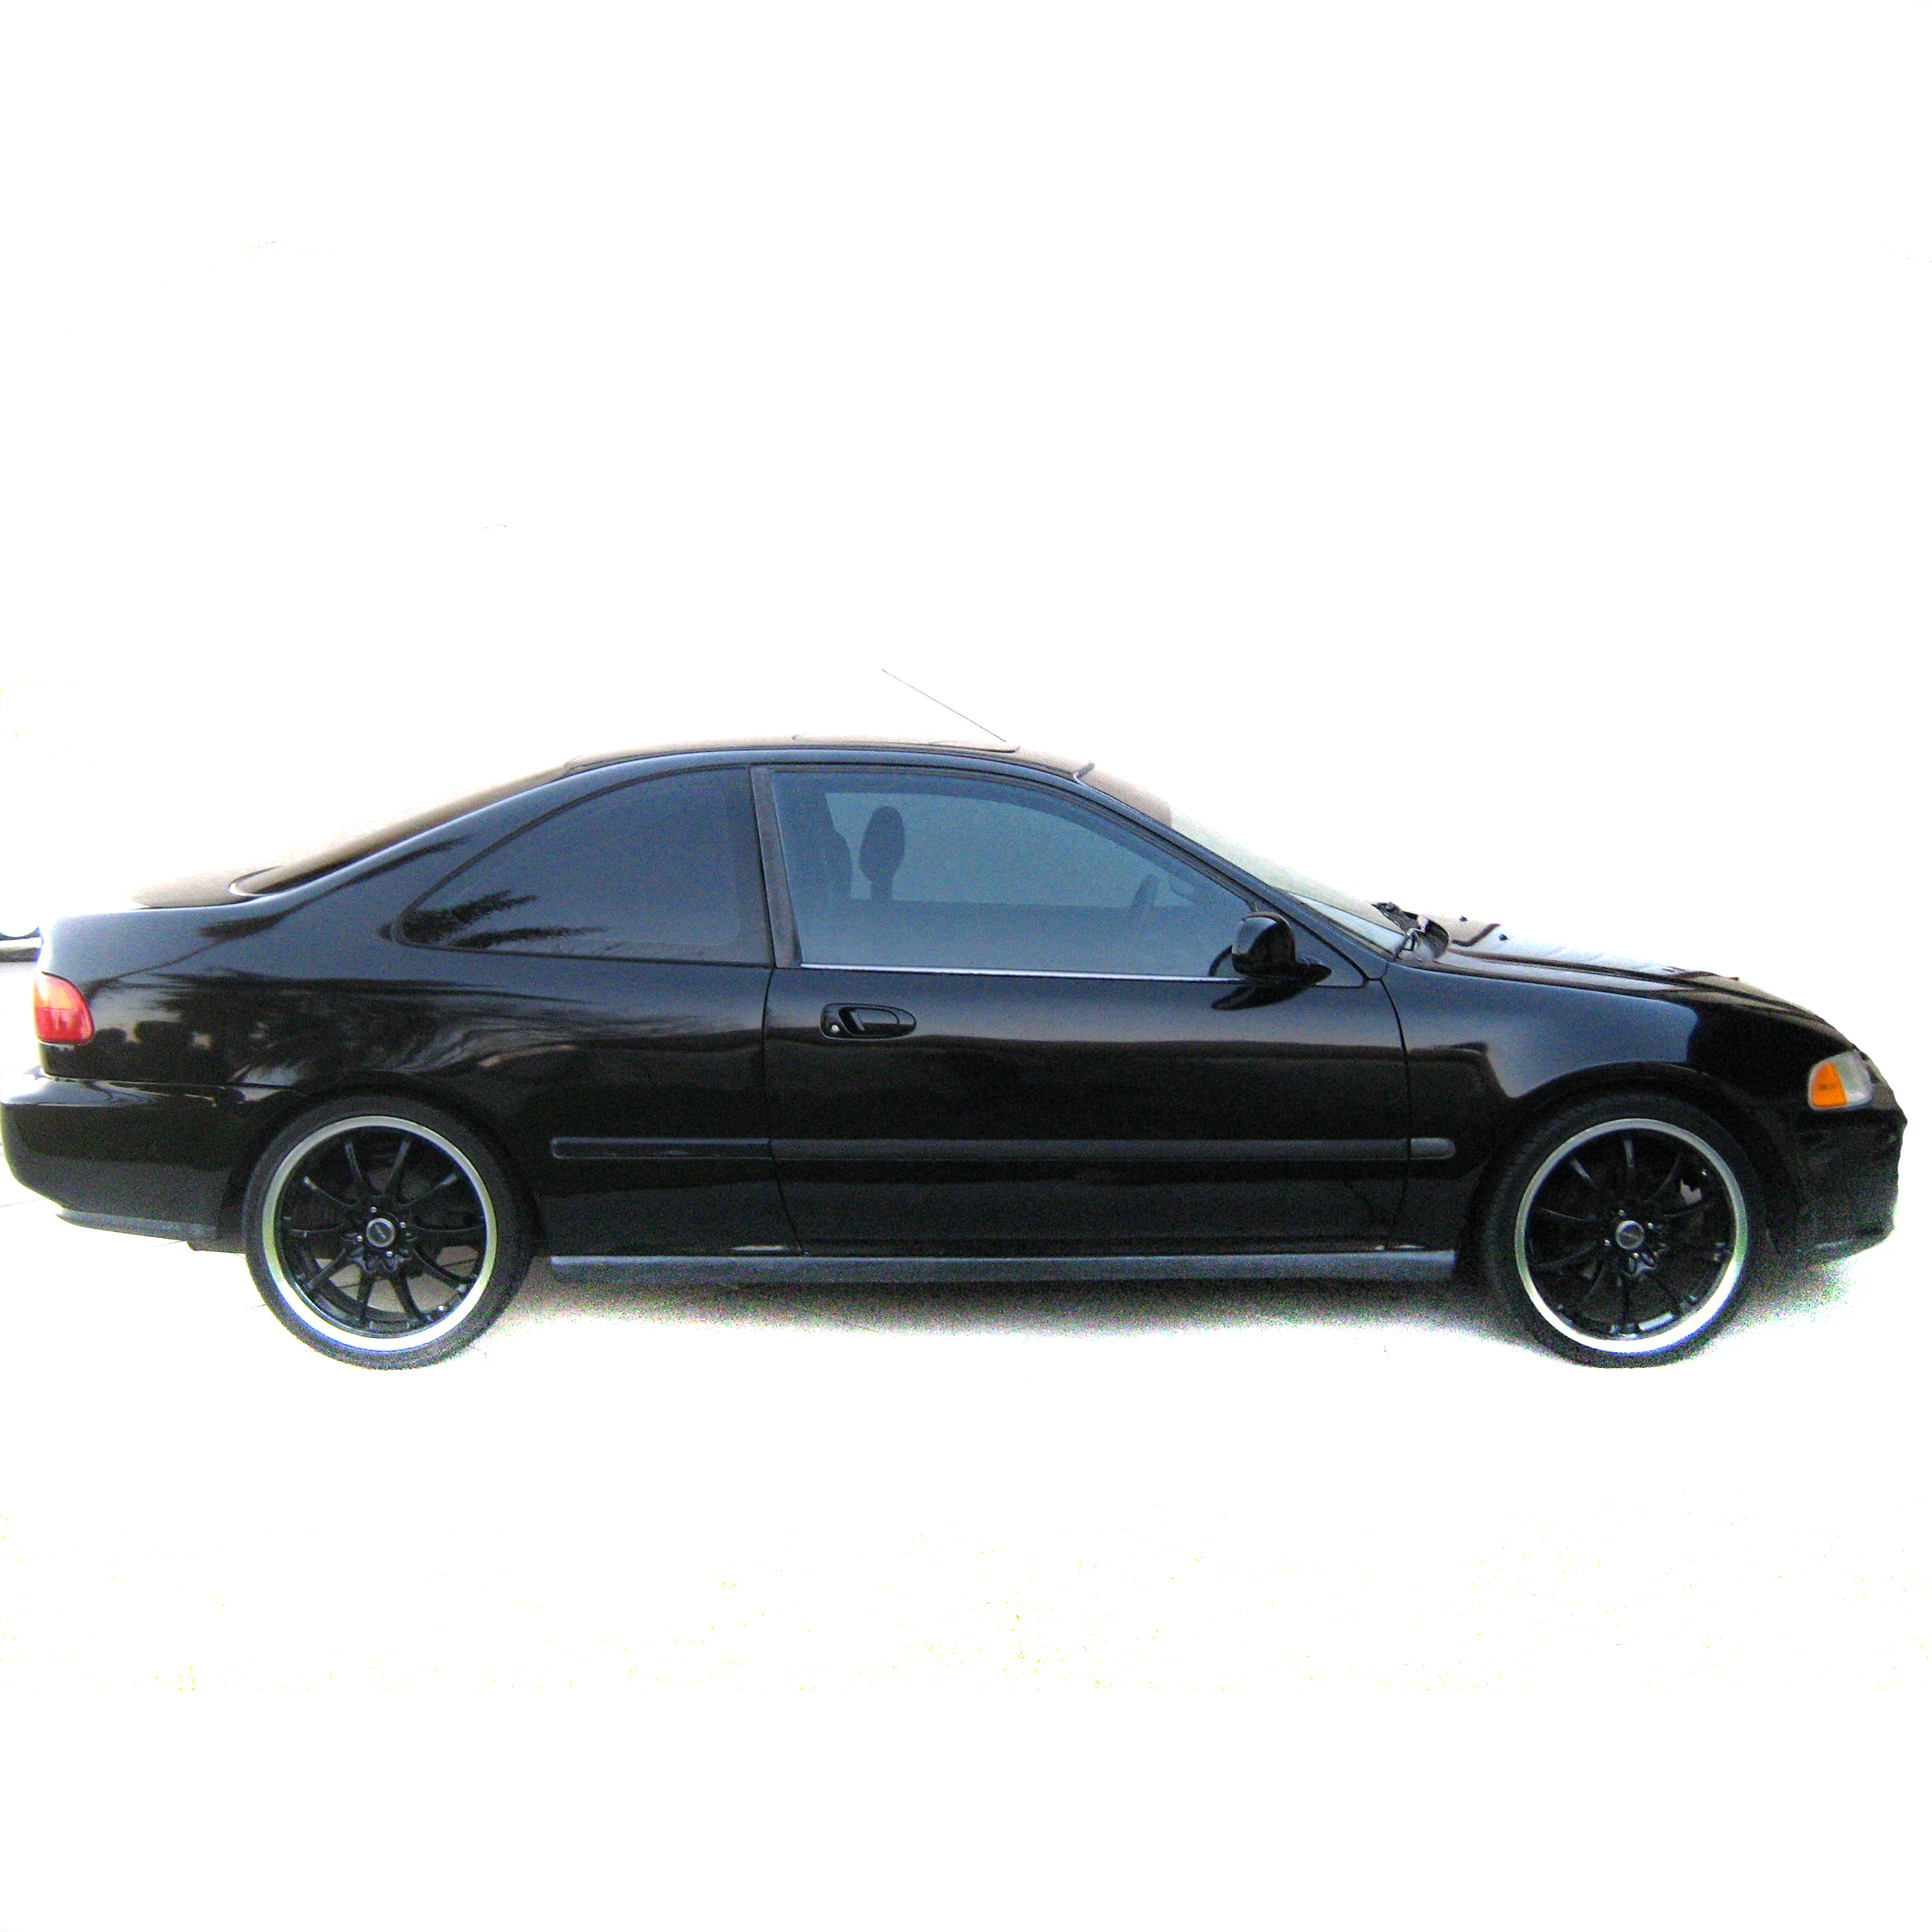 Honda Civic Coupe (All Models)